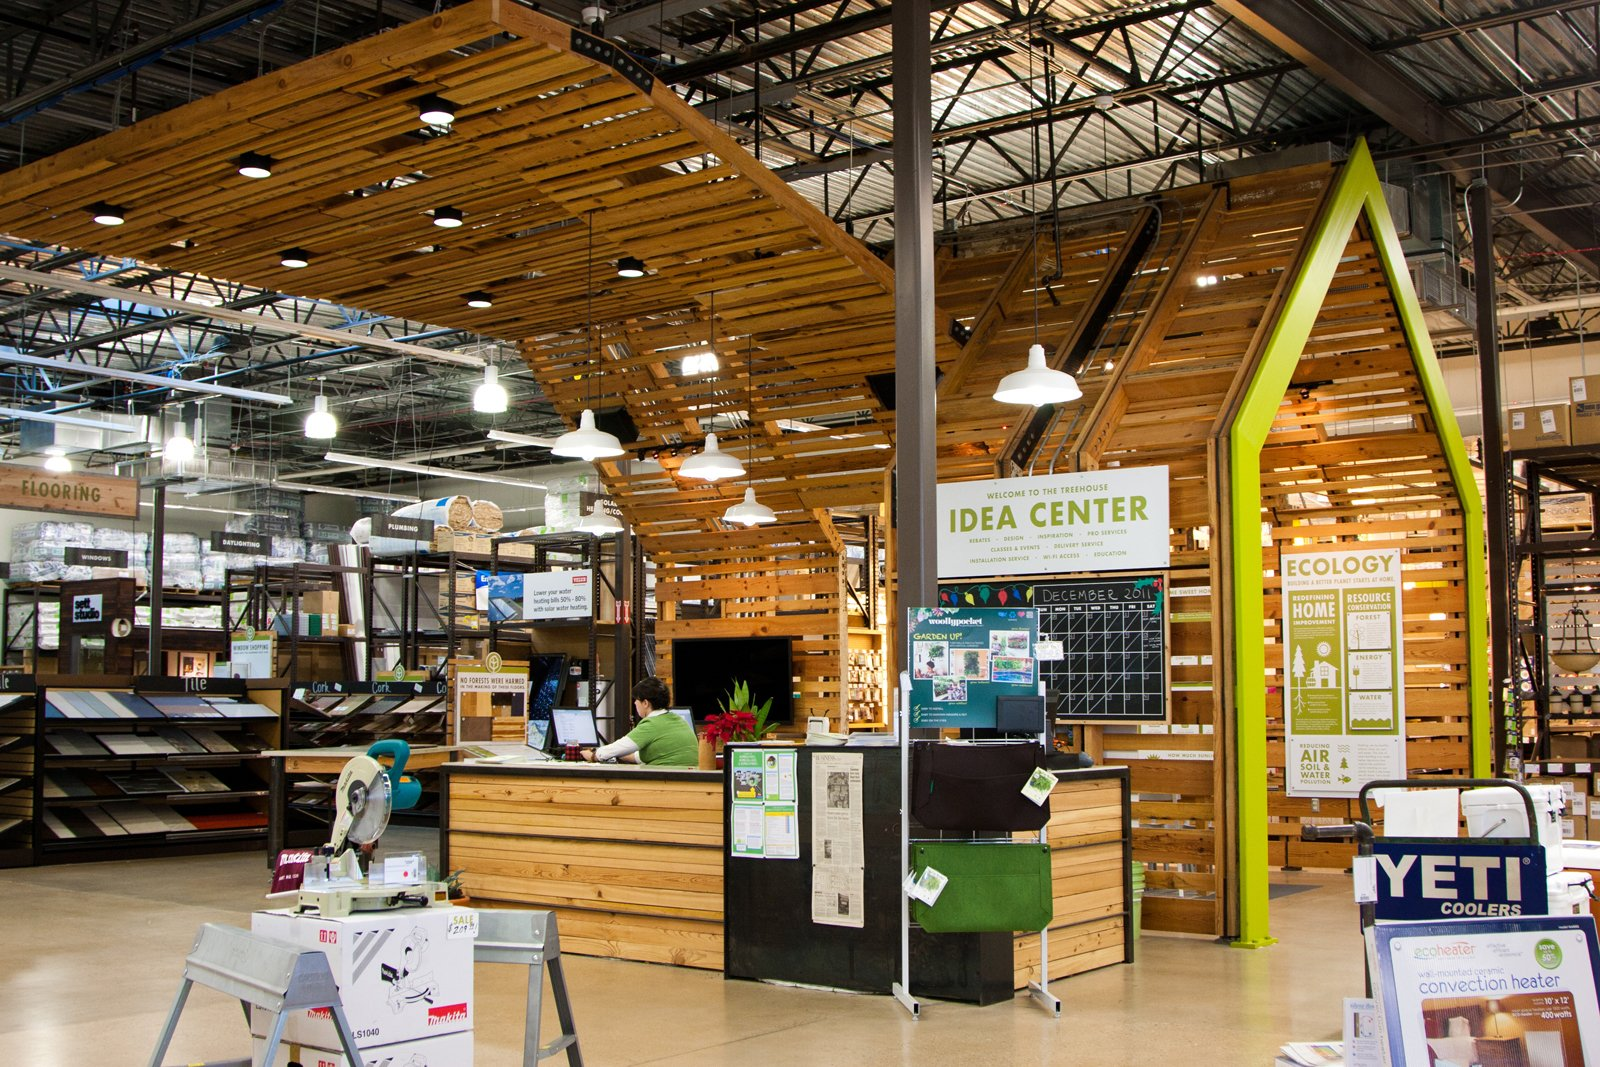 """The hub of the store, the Idea Center, functions similarly to an Apple store Genius Bar. """"We really want this to be an experience,"""" says Yanosy of the concept. """"We're all on a journey, and hopefully our customers know we are on that journey with them - we think it's important to be humble. Think about what it's like to go into an REI versus some other sporting goods store. No matter what level you're at, you're welcomed and educated and the entire experience is positive,"""" he says. """"That's what a hardware store should be like.""""  Photo 4 of 8 in A New Kind of Hardware Store: TreeHouse"""